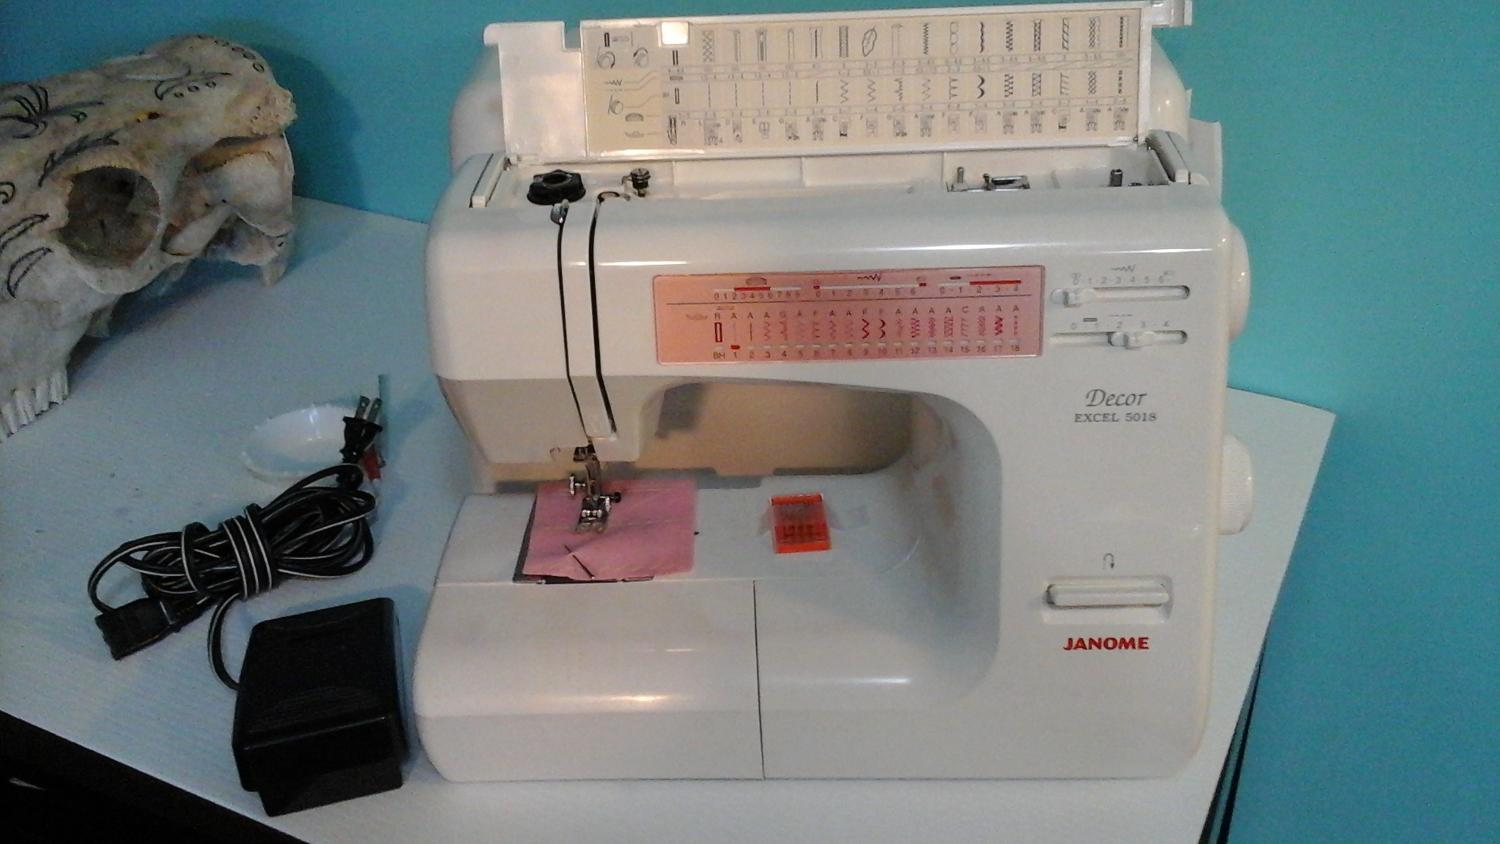 Find more Janome Decor Excel 5018. Excellent Used Condition! for sale at up  to 90% off